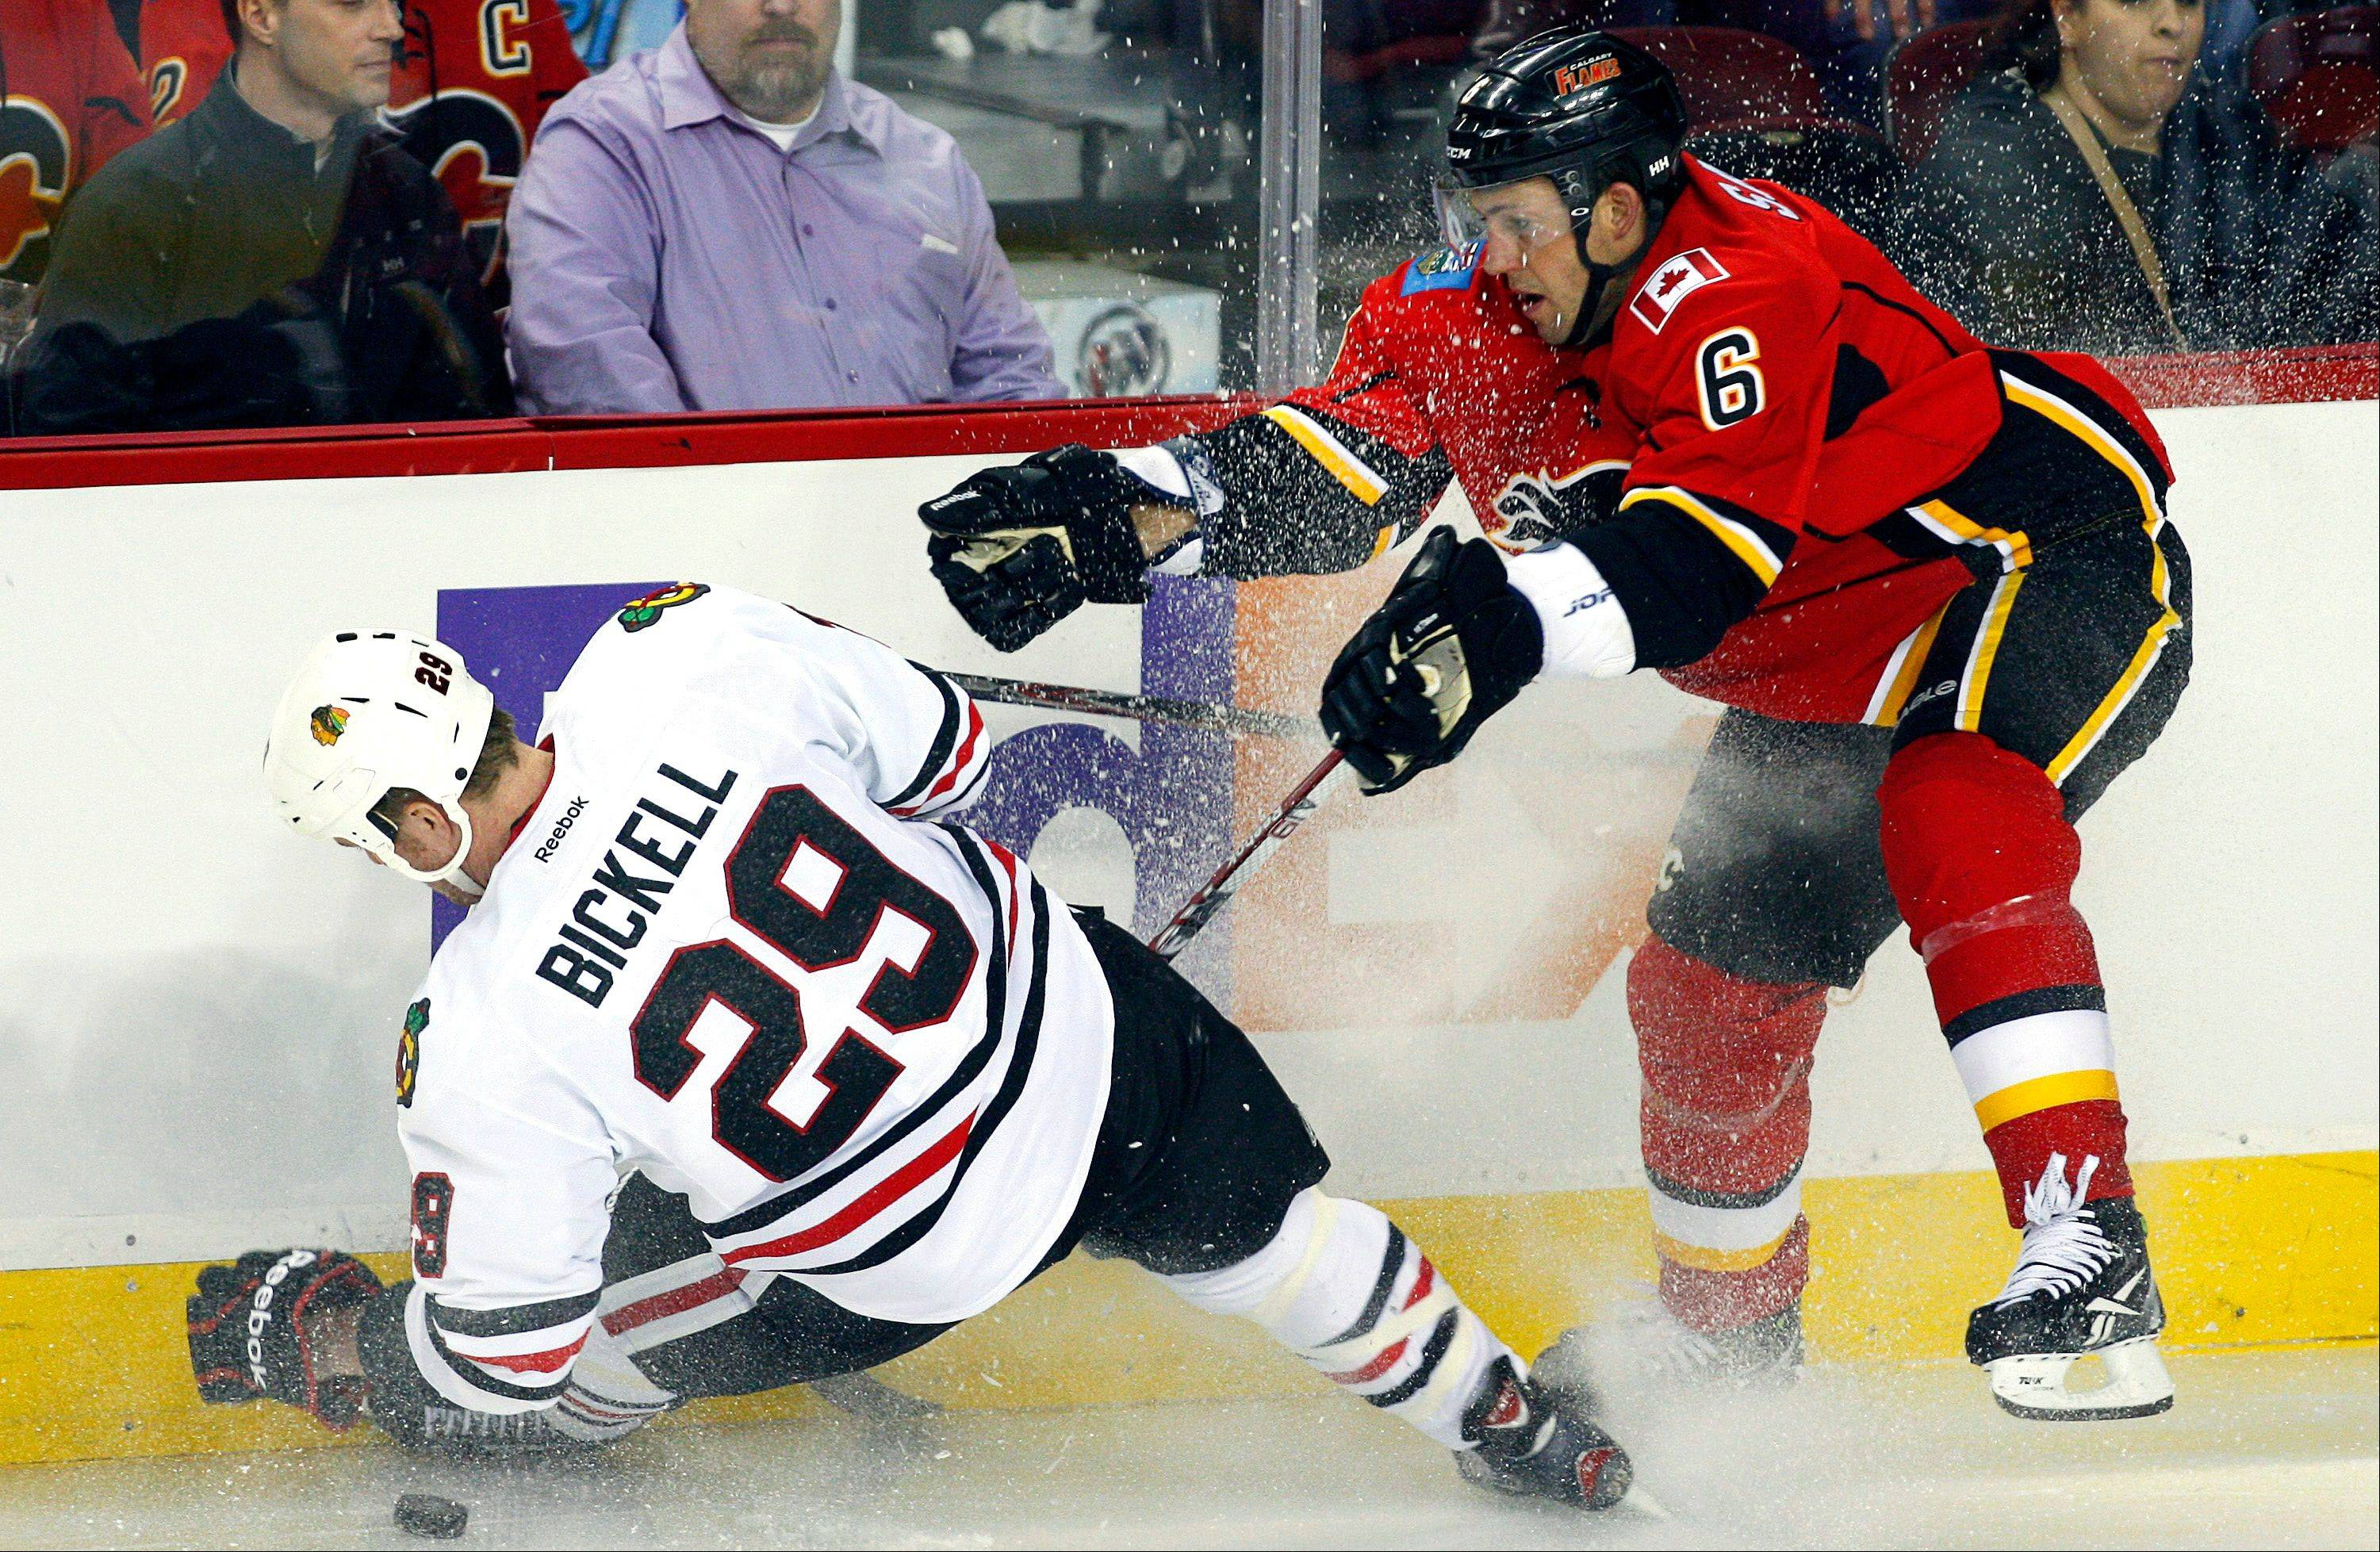 Blackhawks getting outhit nearly every game